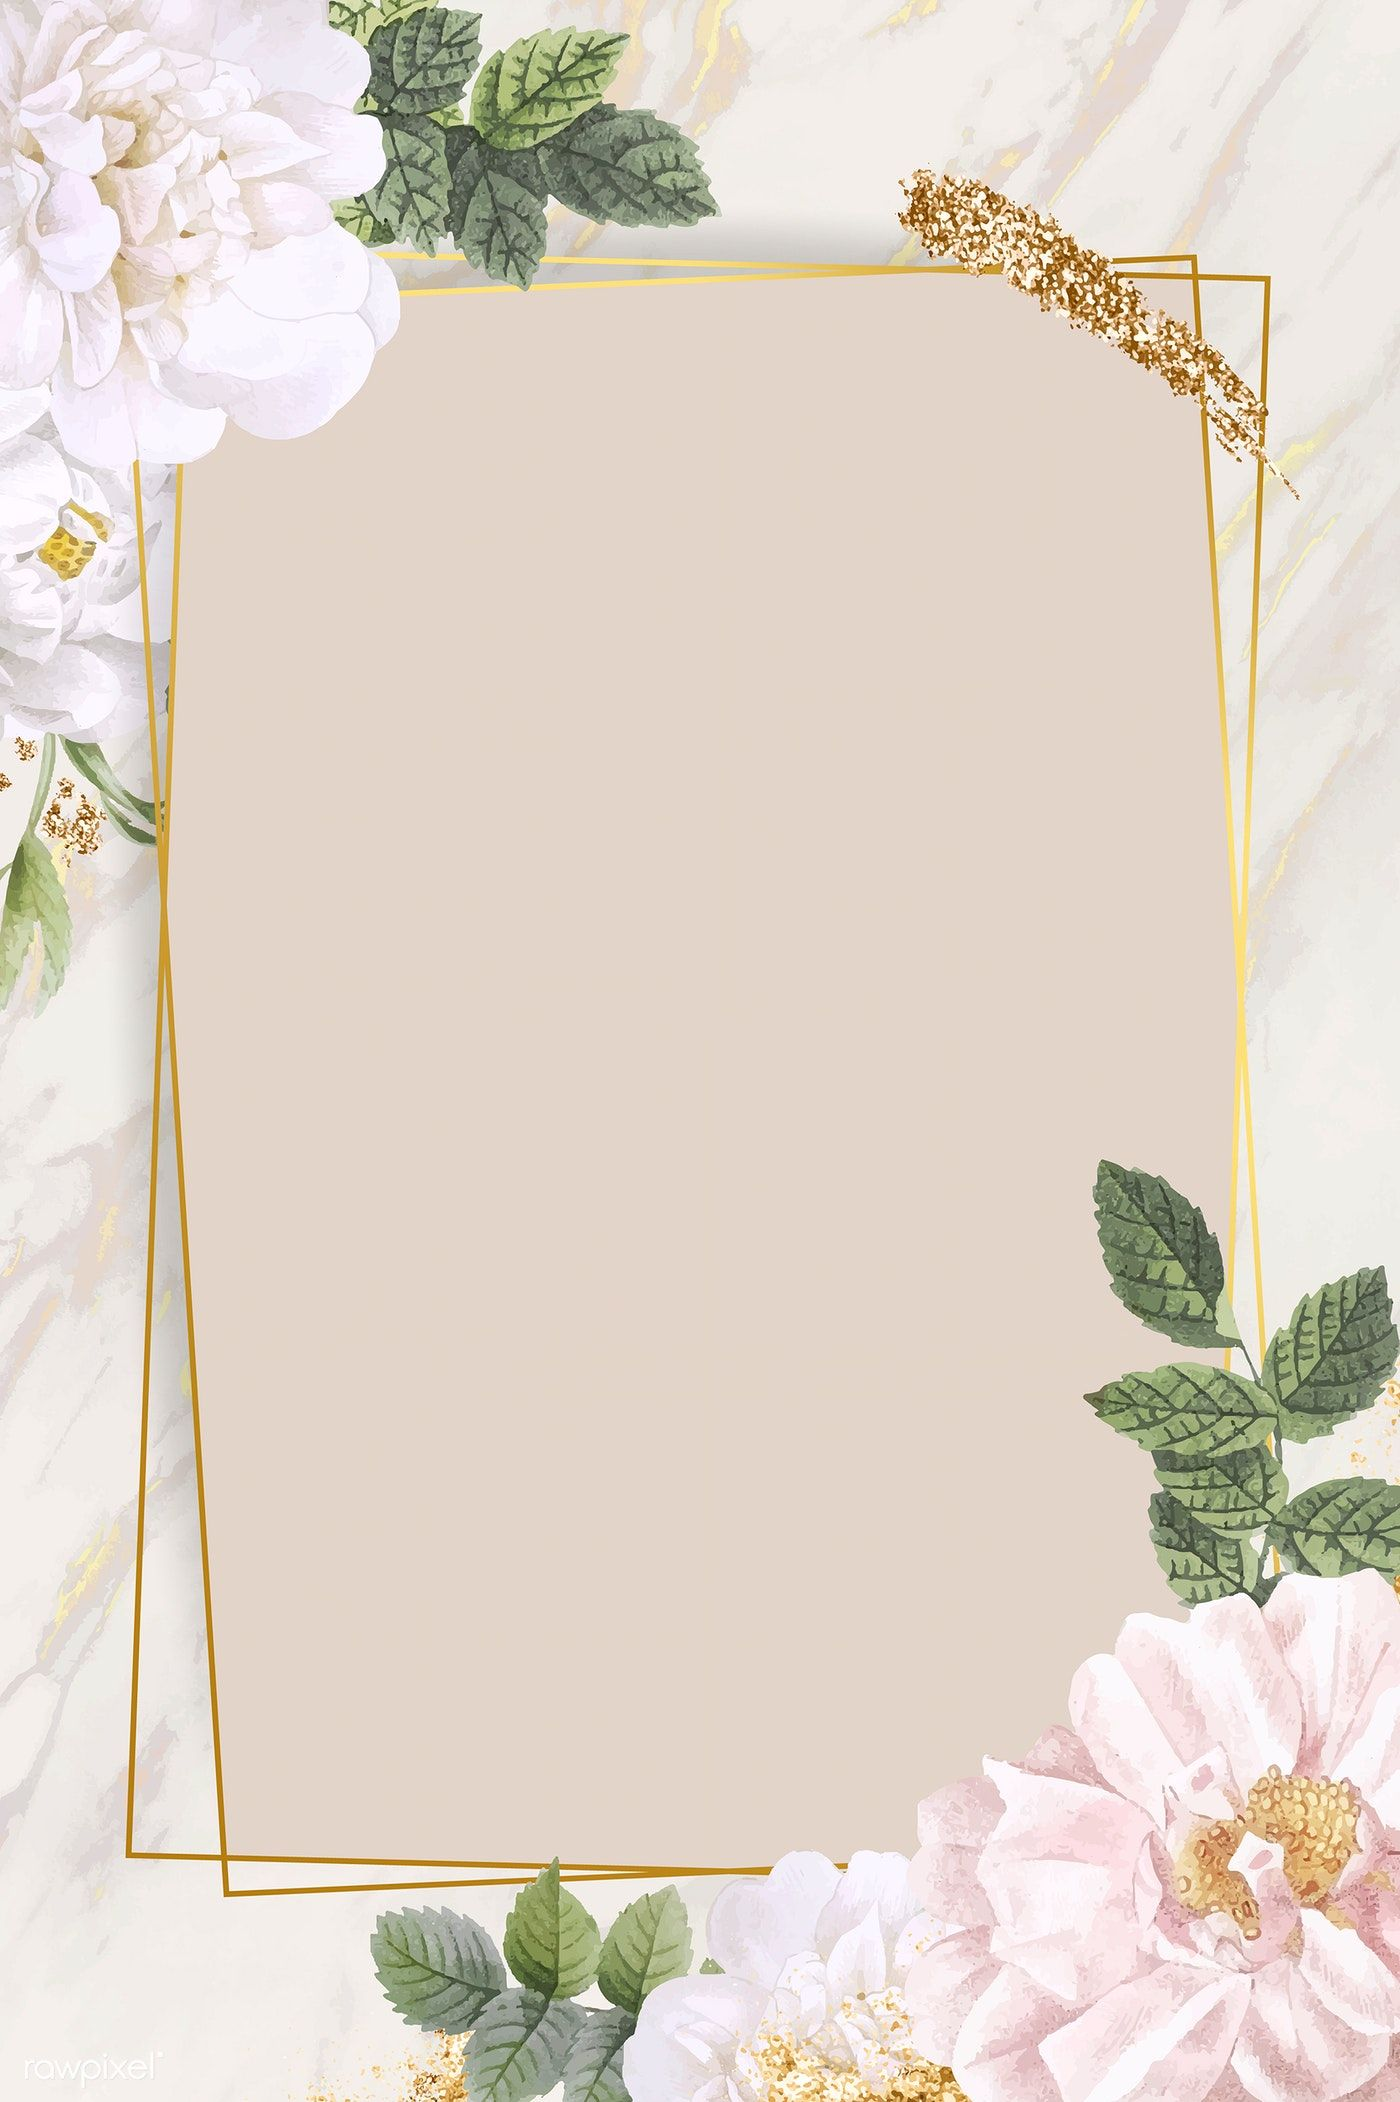 Download premium vector of Rectangle rose frame on marble